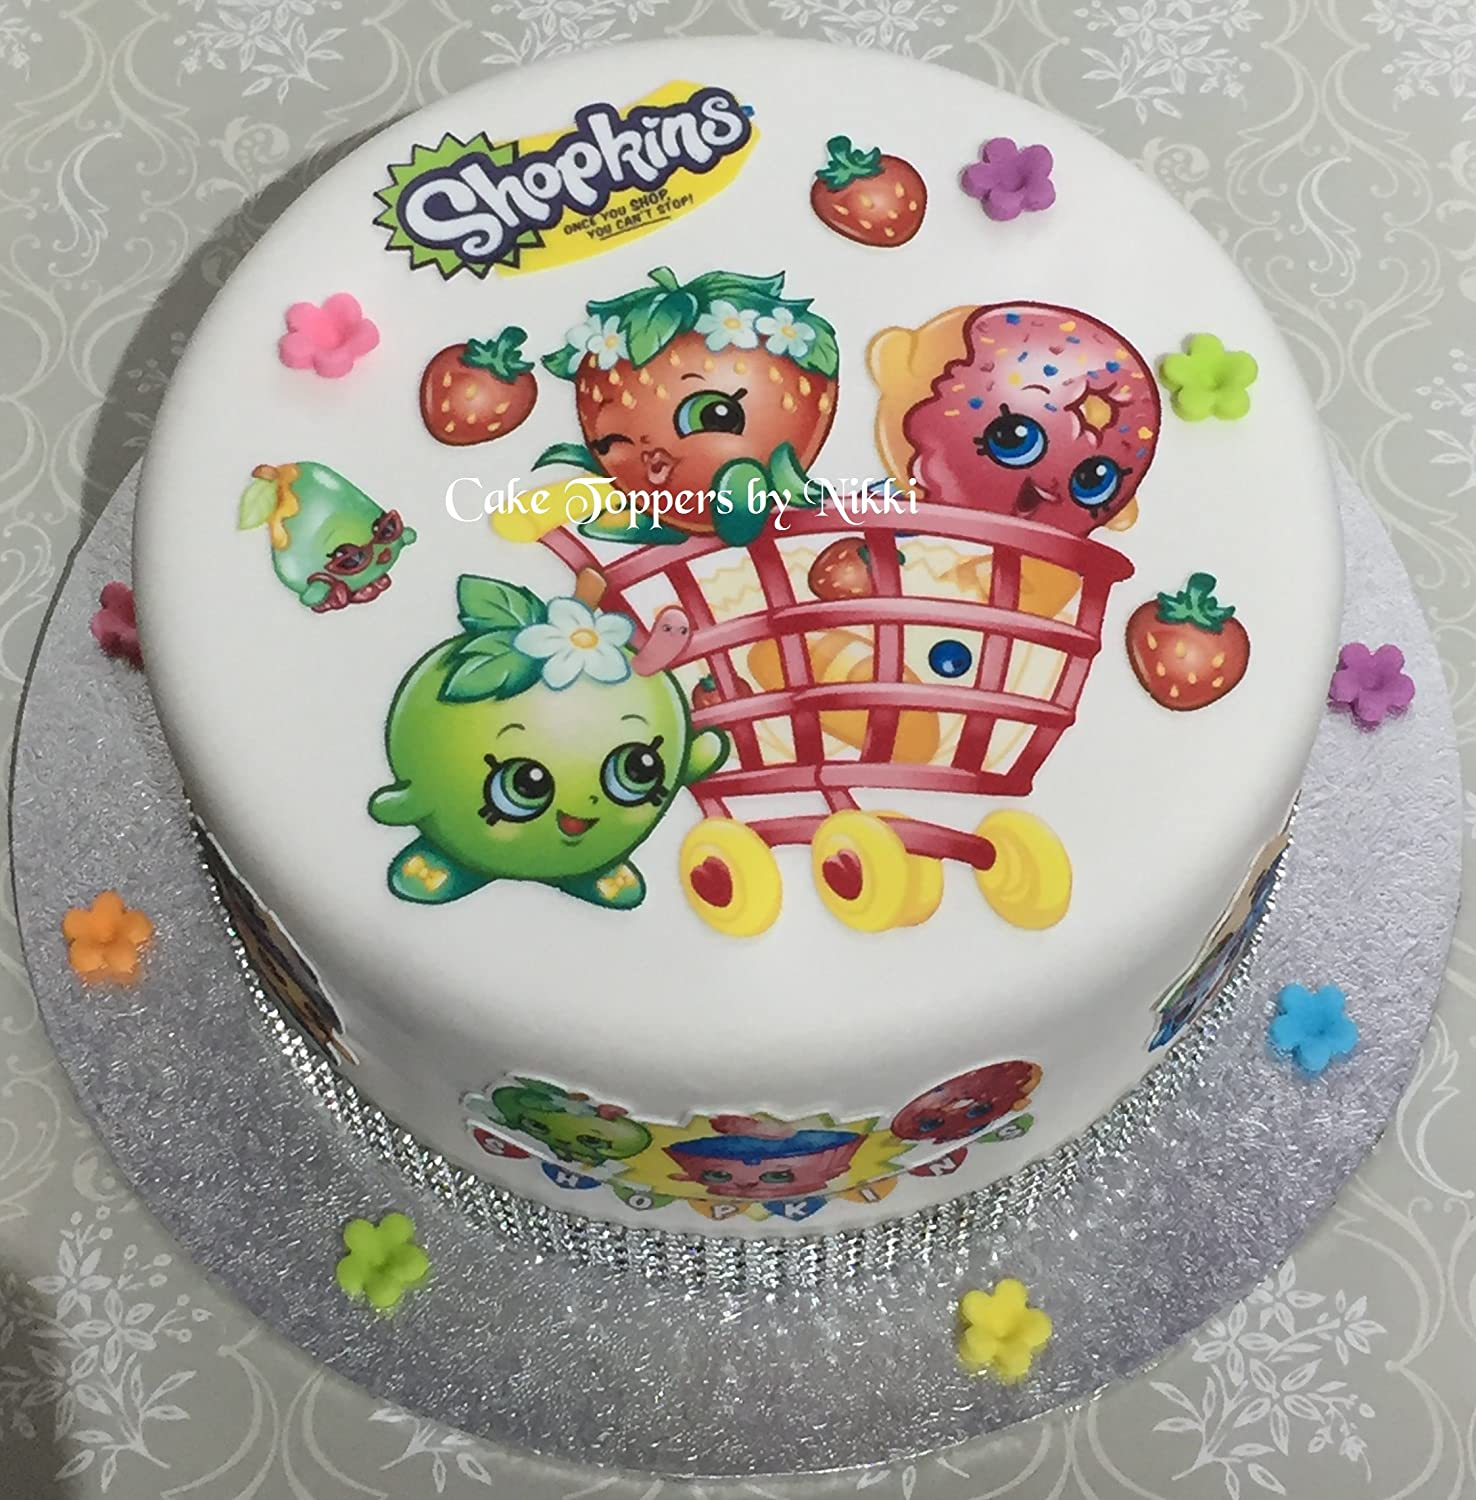 edible cake decorations shopkins cake images 3819